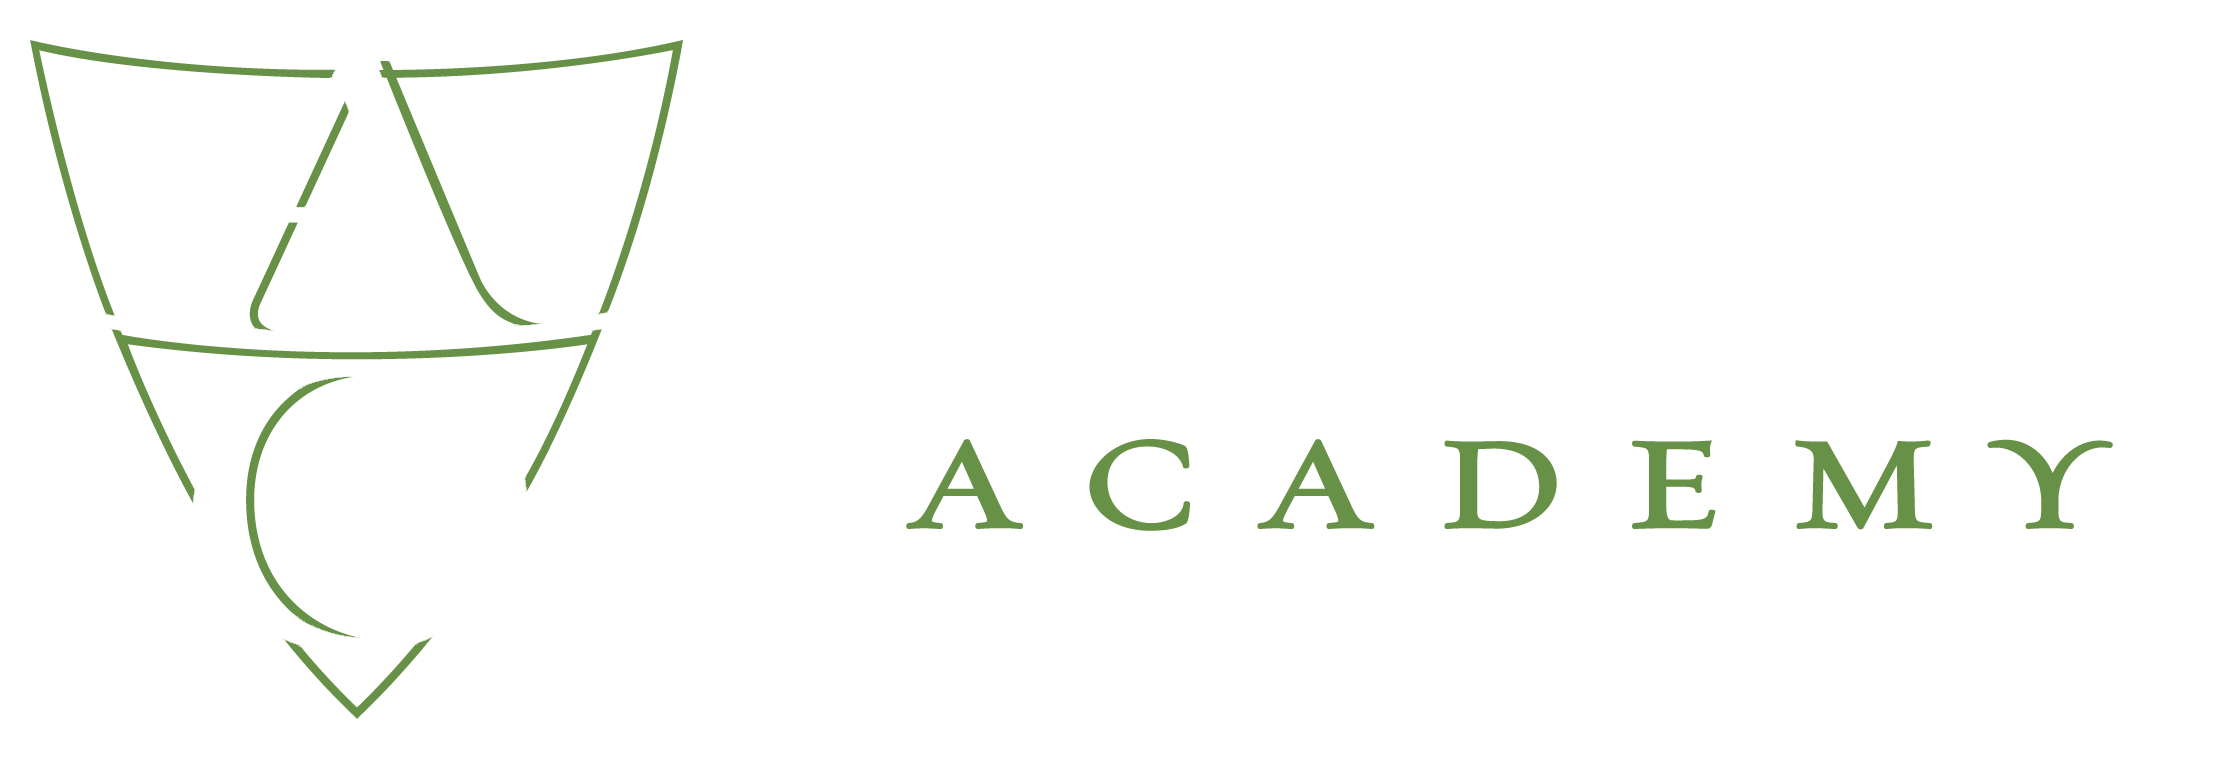 Andrews Osborne Academy A Private Boarding School In Willoughby Oh